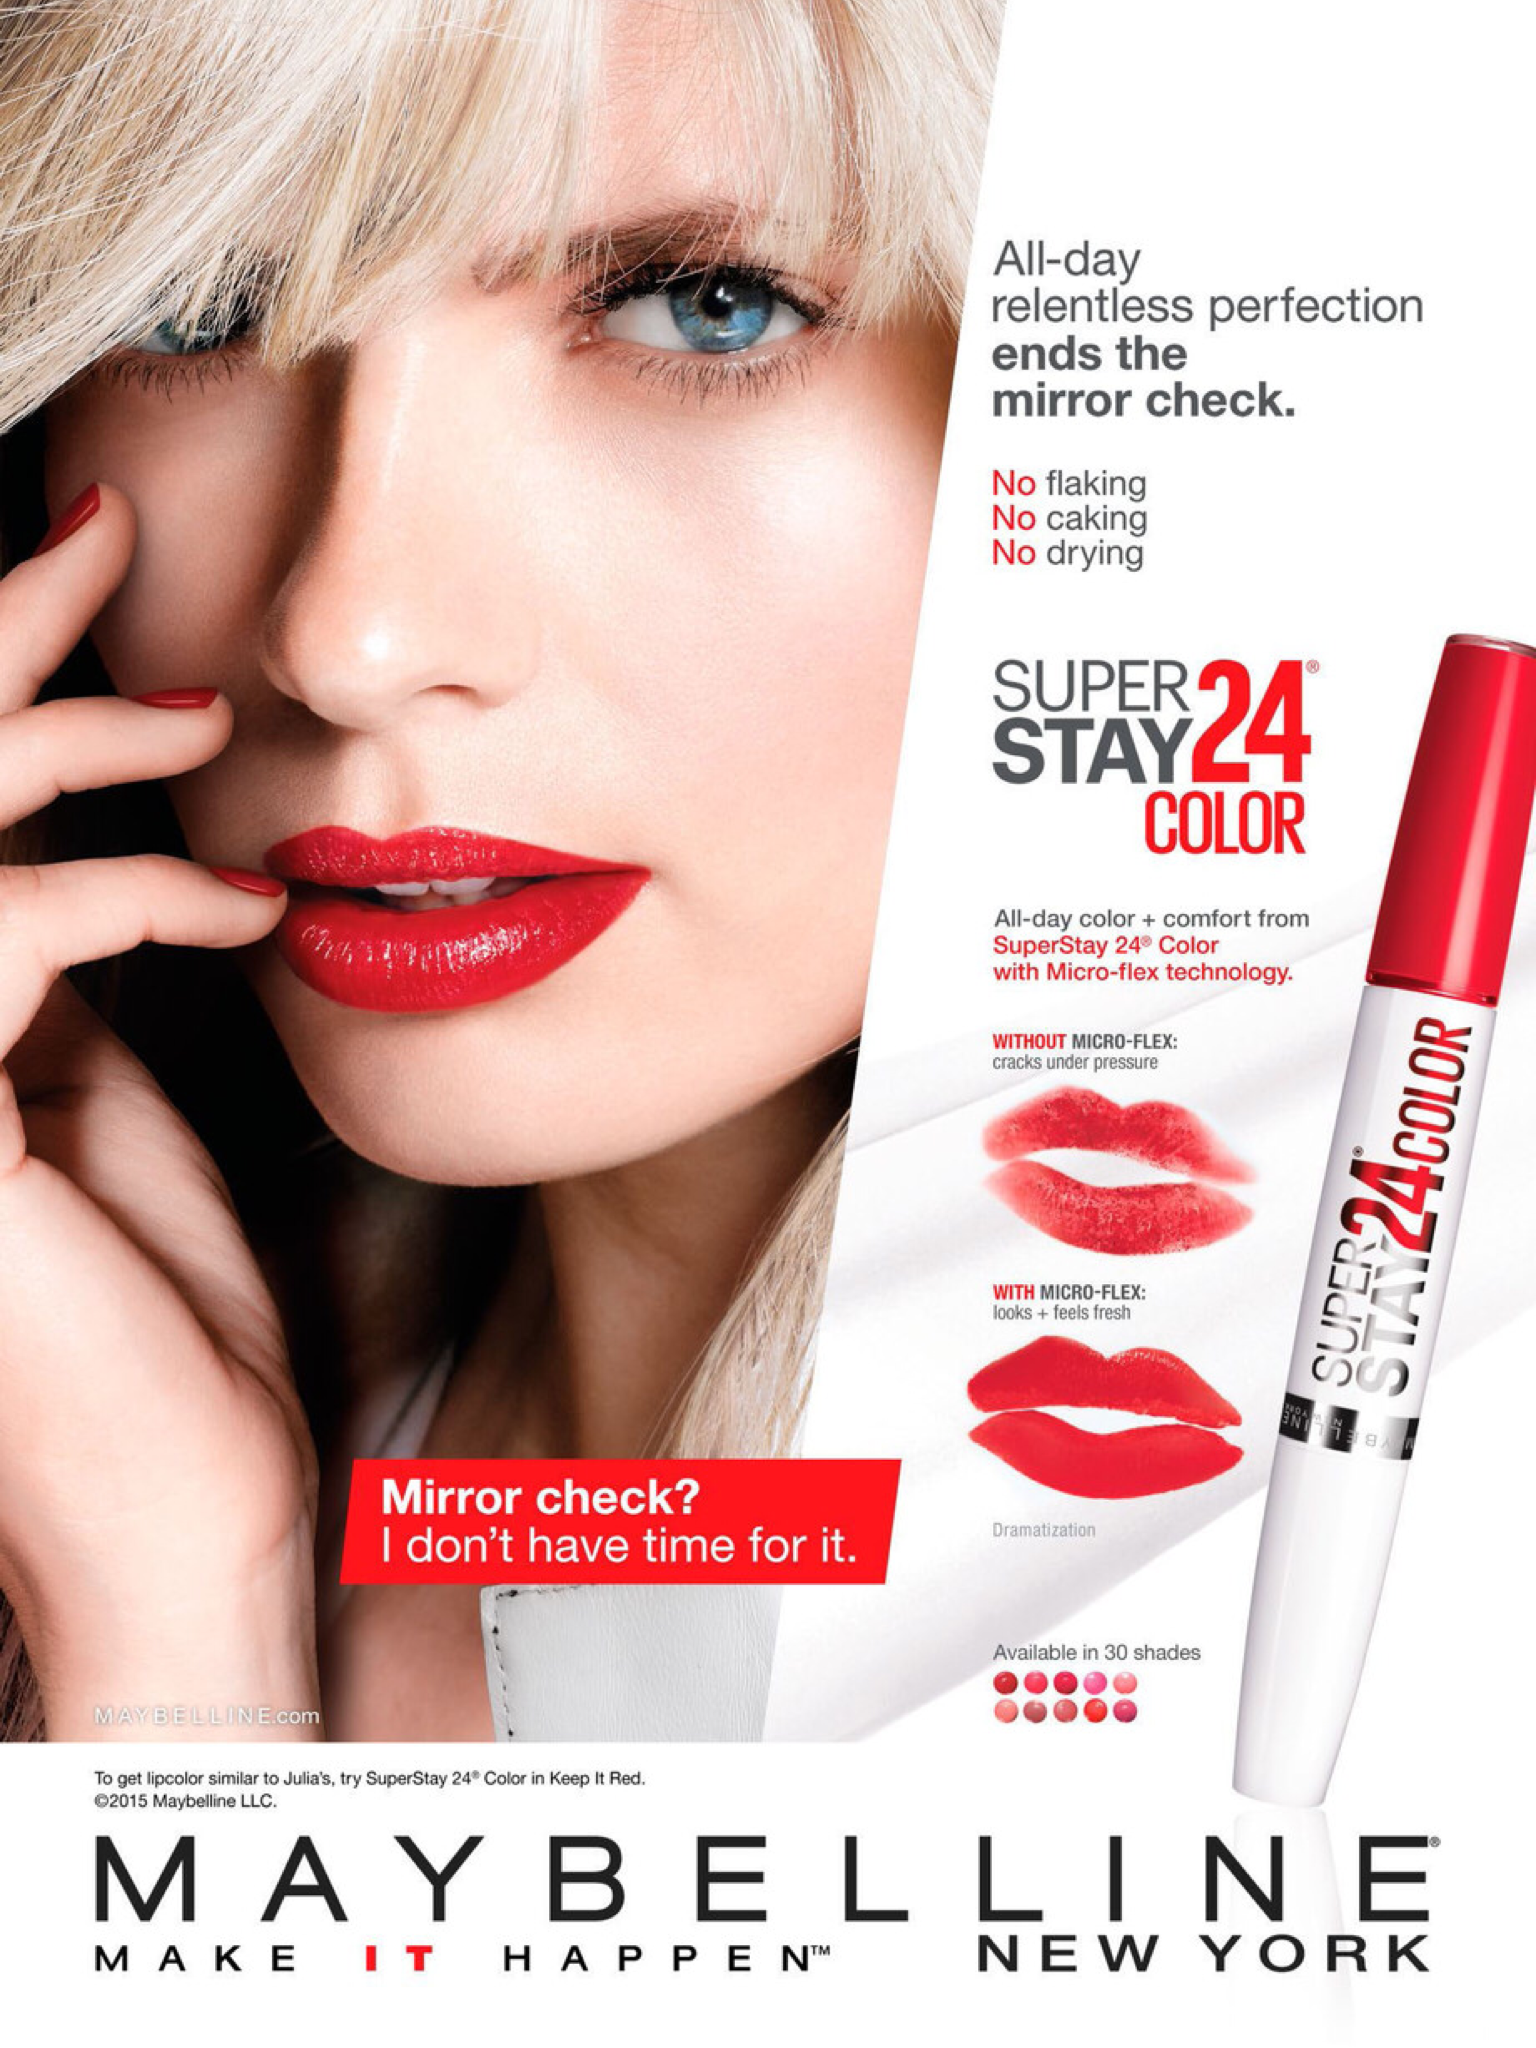 Maybelline Cosmetic Advertising | Cosmetic & SkinCare ...